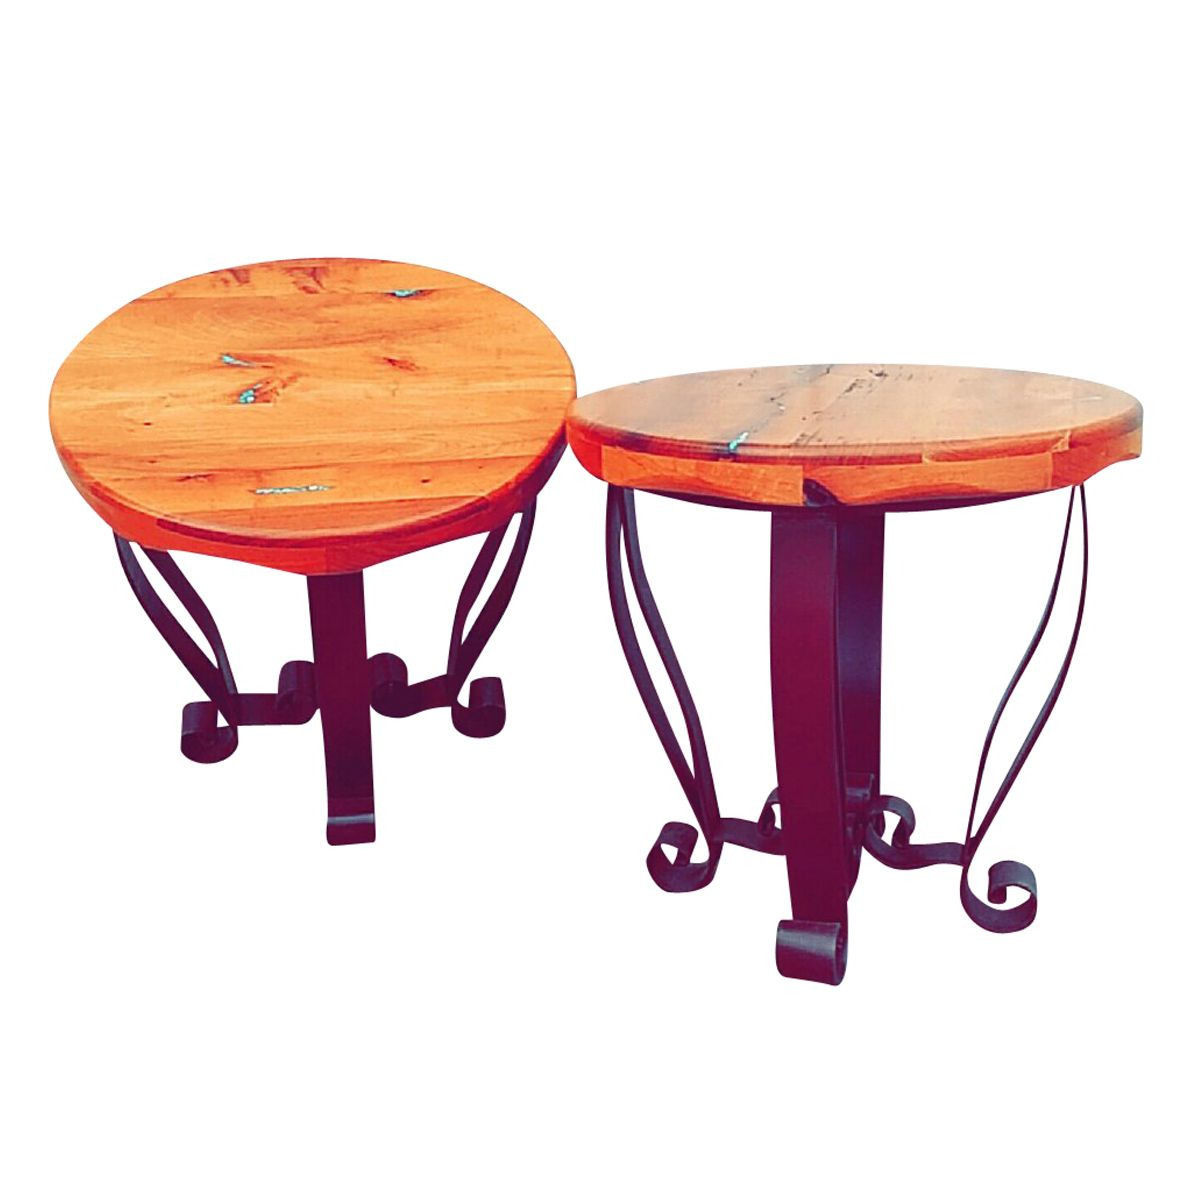 Mesquite Scroll End Tables with Turquoise Inlay - Set of 2